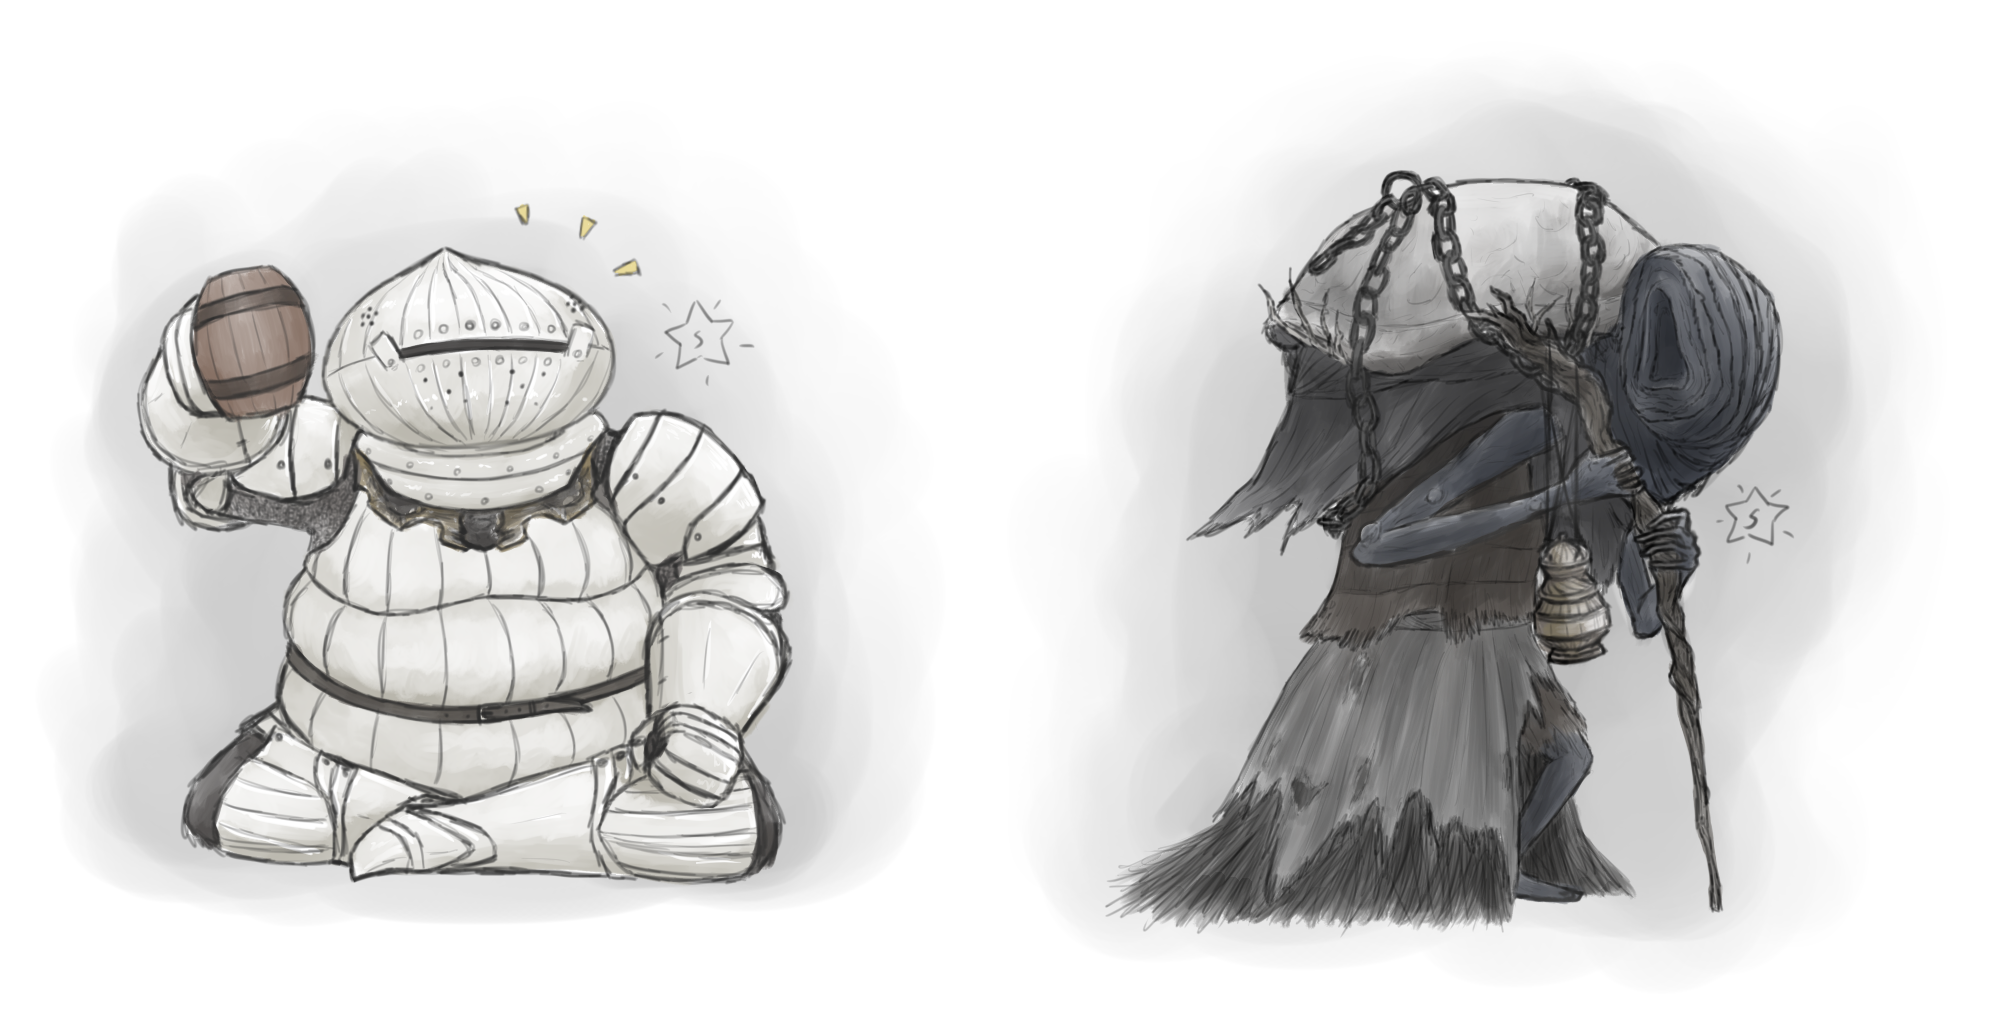 Siegward And Yoel By Sofstar On Deviantart Learn about london's past, present and future in this video. siegward and yoel by sofstar on deviantart